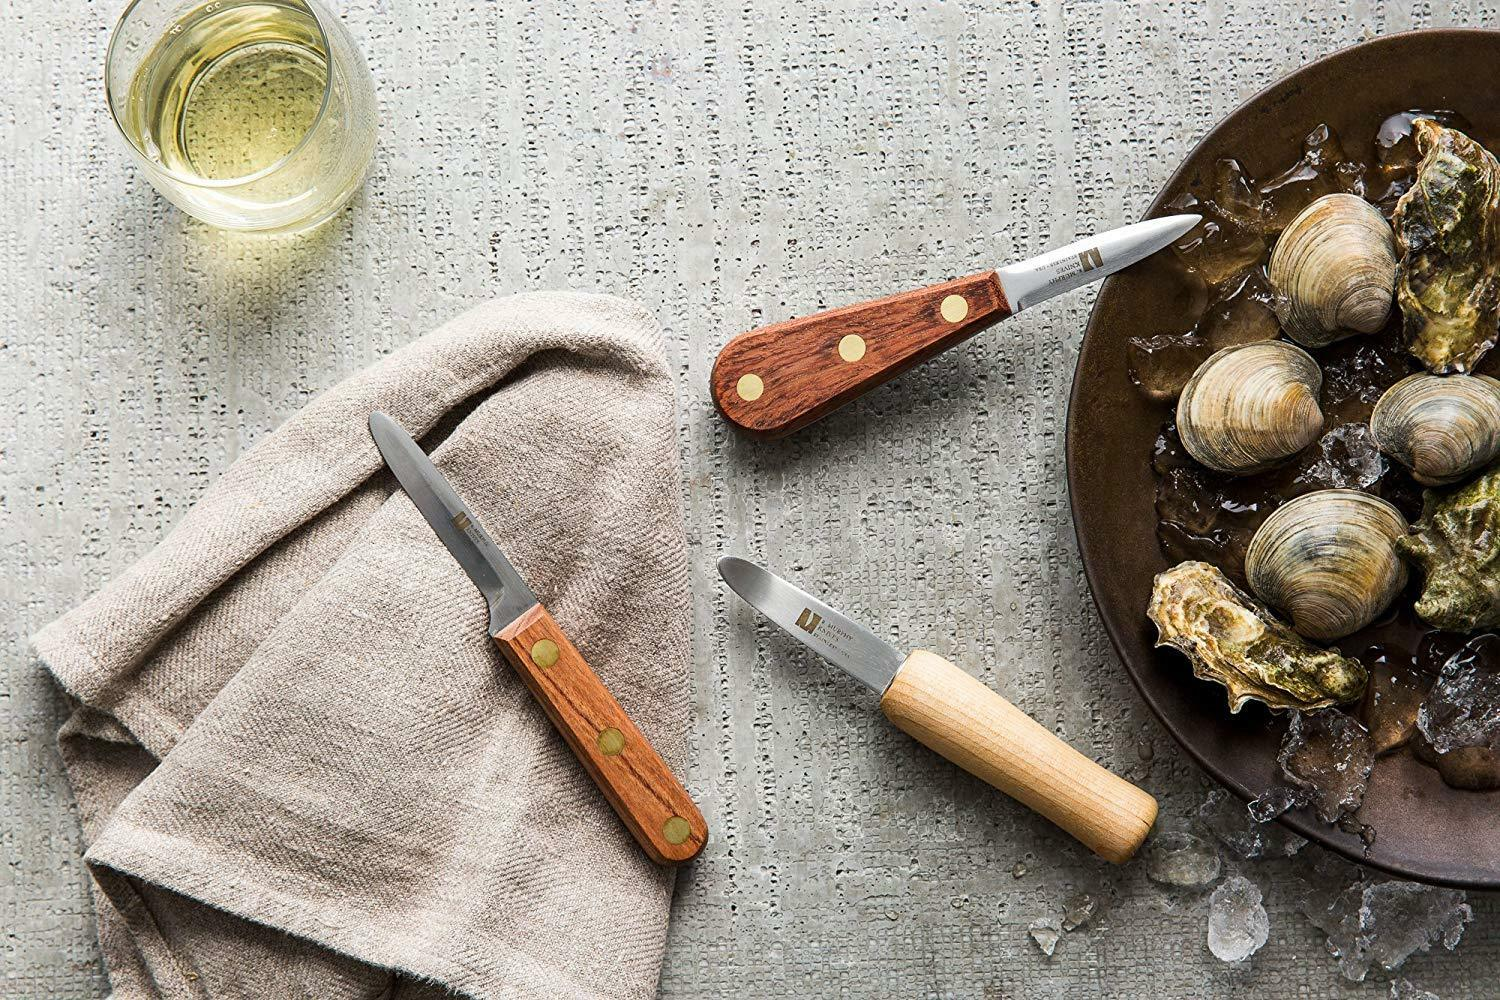 R Murphy 3 Piece Complete Oyster and Clam Knife Set Bundle Commercial-grade